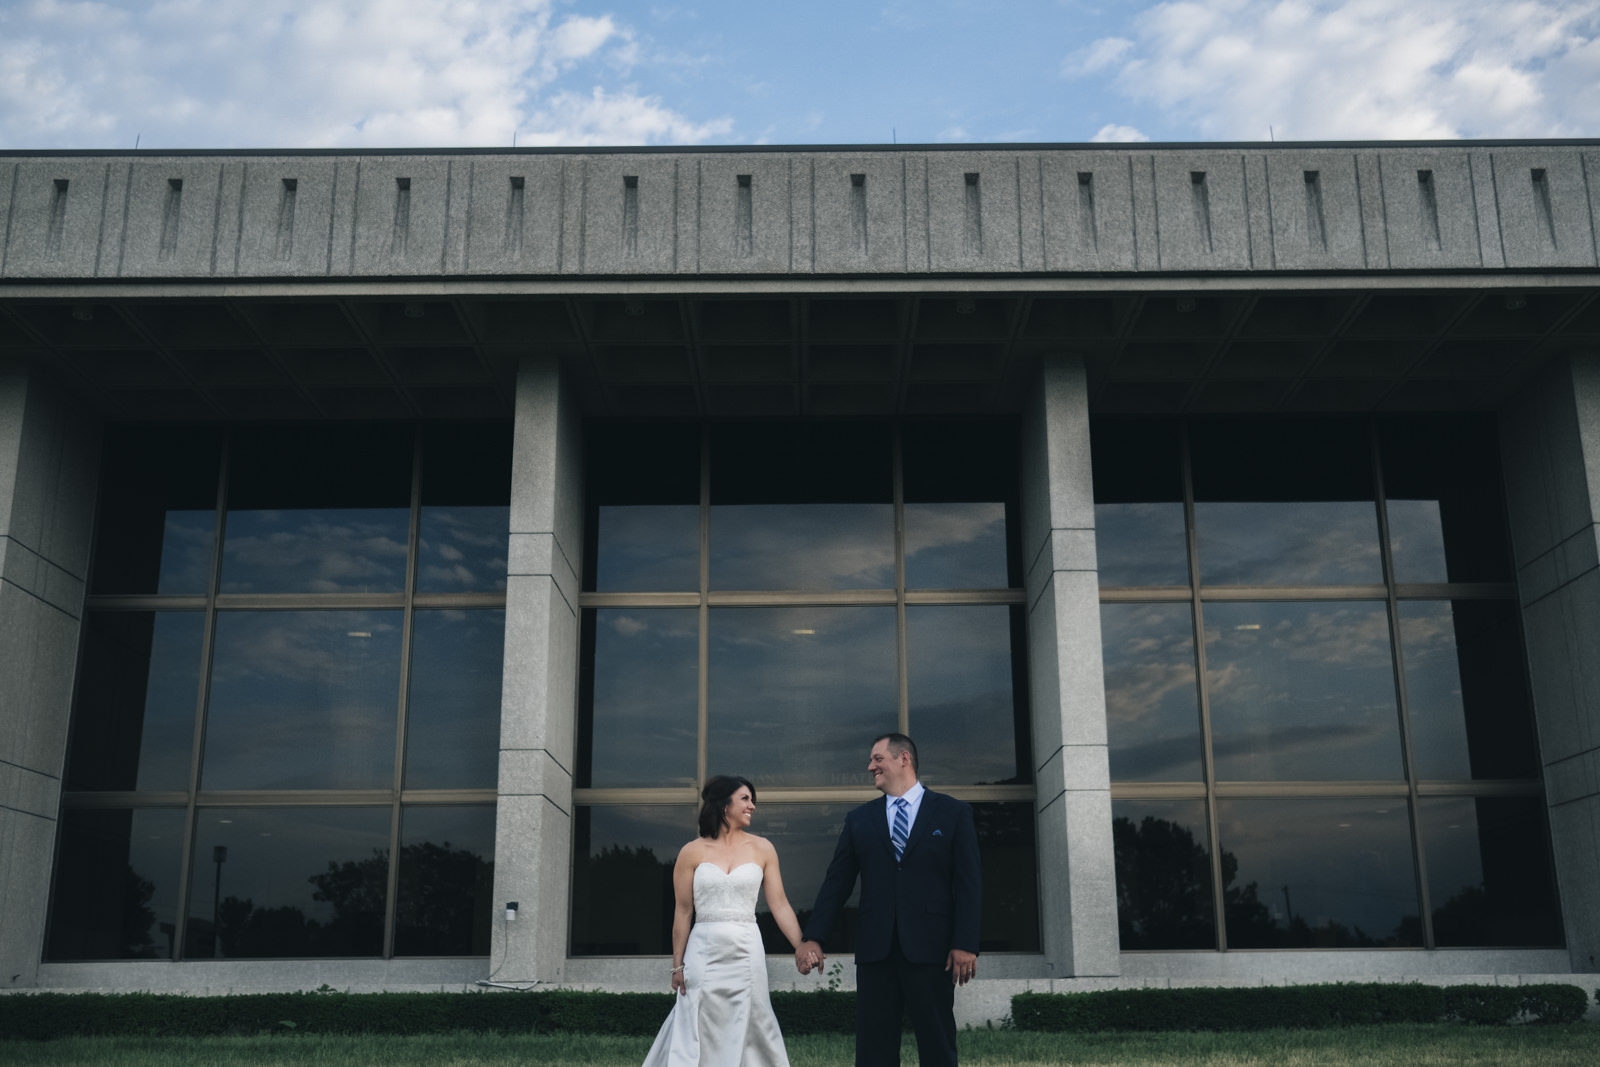 Bride and groom share an intimate moment in between their wedding ceremony and reception outside of Stranahan Theatre.